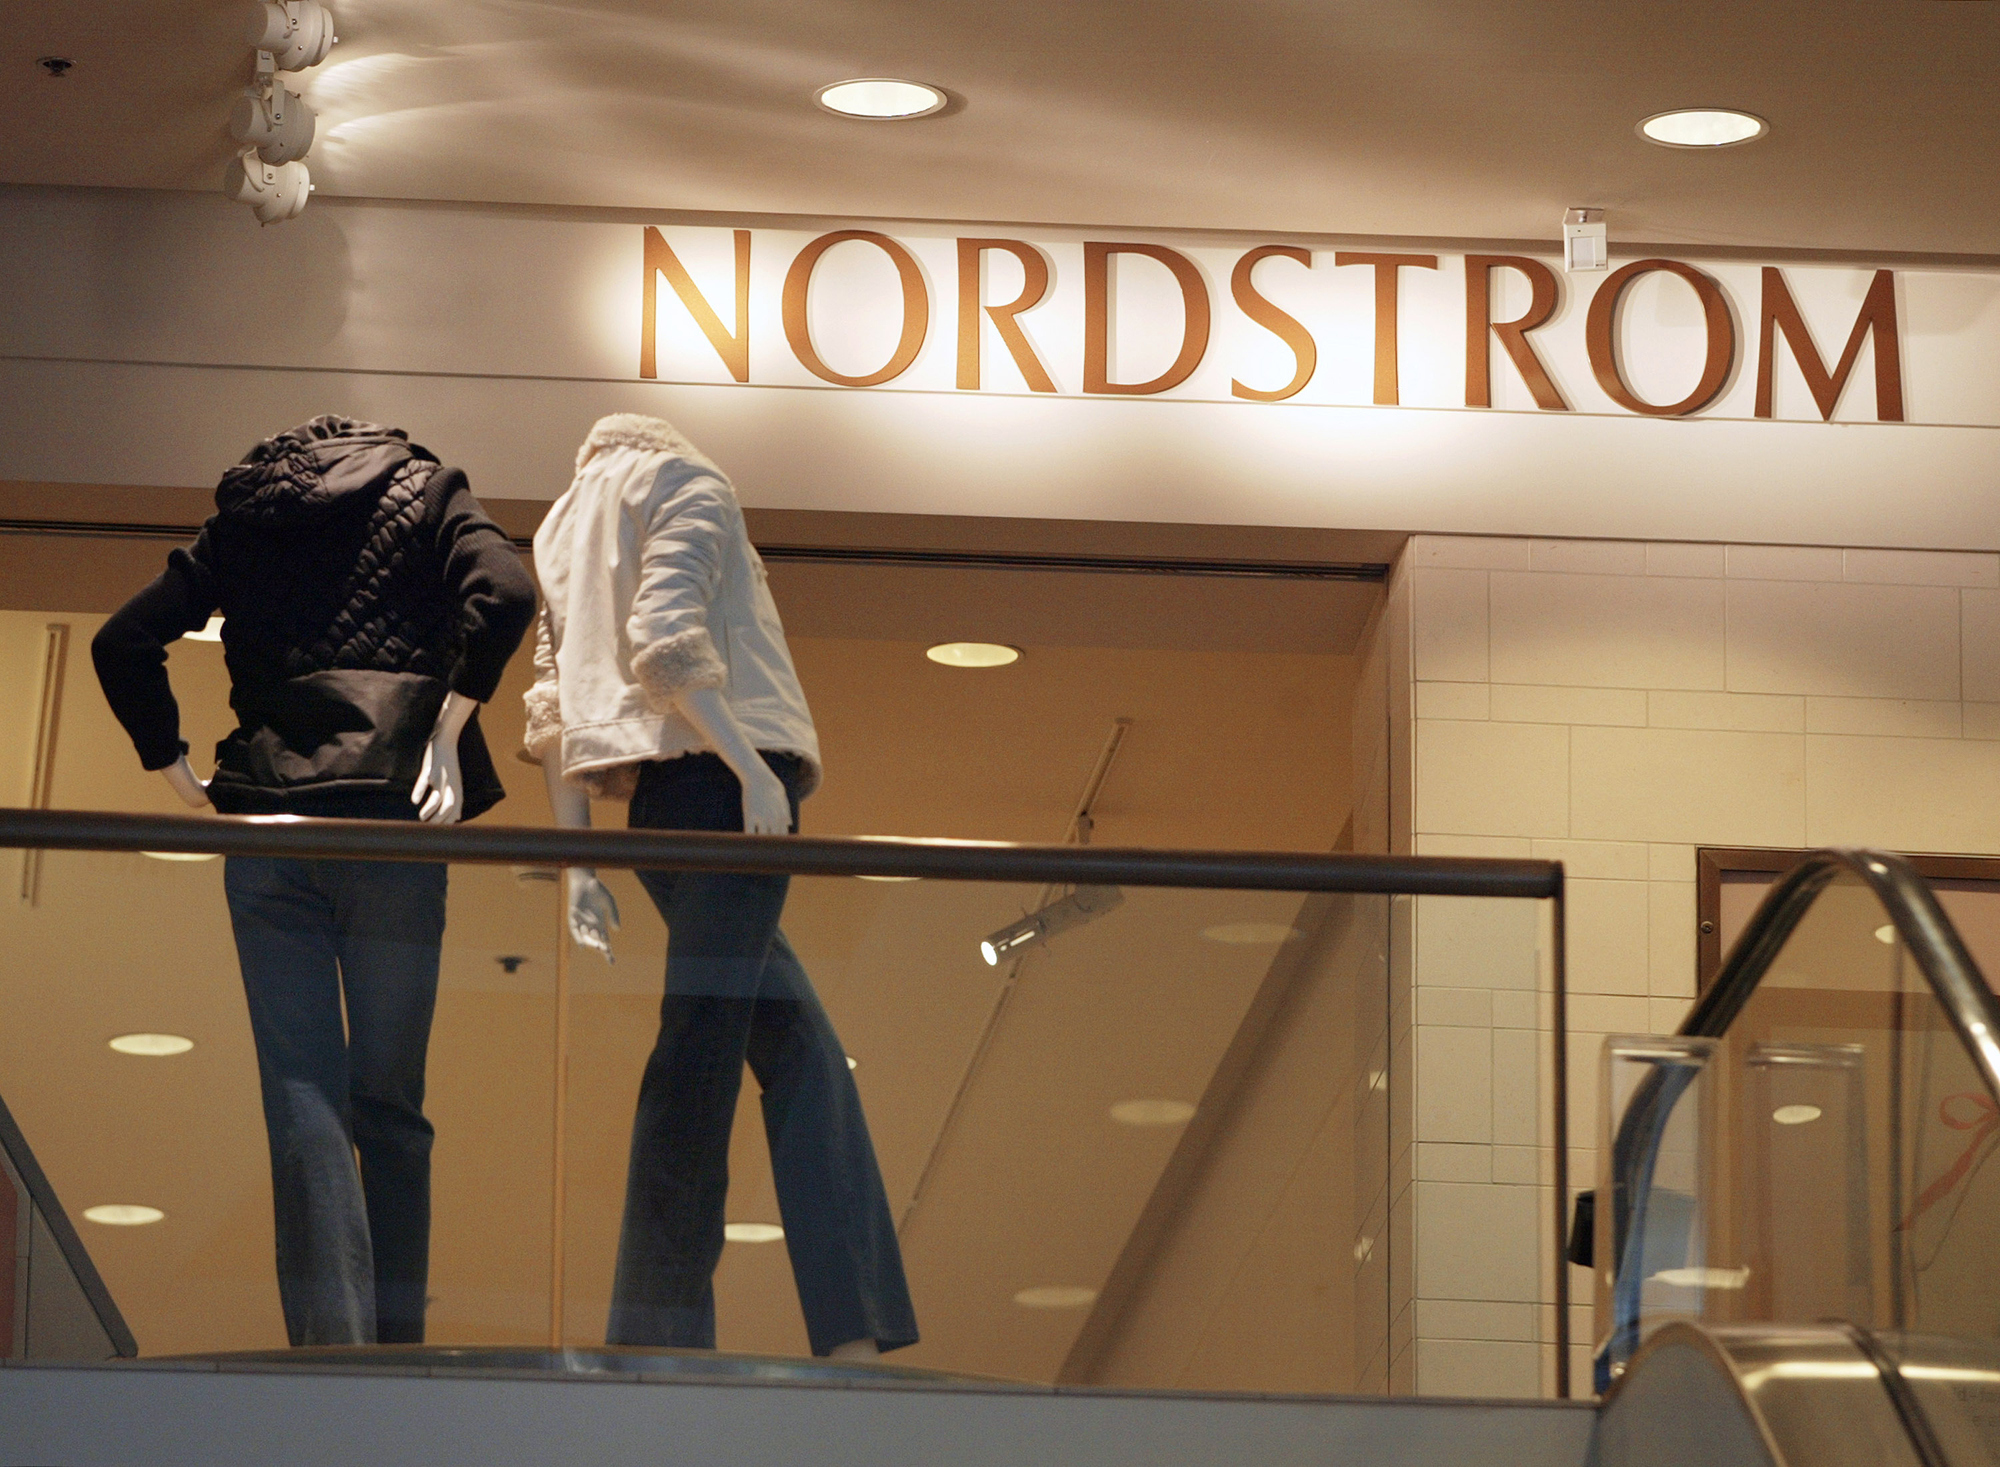 acc3e9a59c9 Nordstrom to open second Manhattan department store to meet demand ...